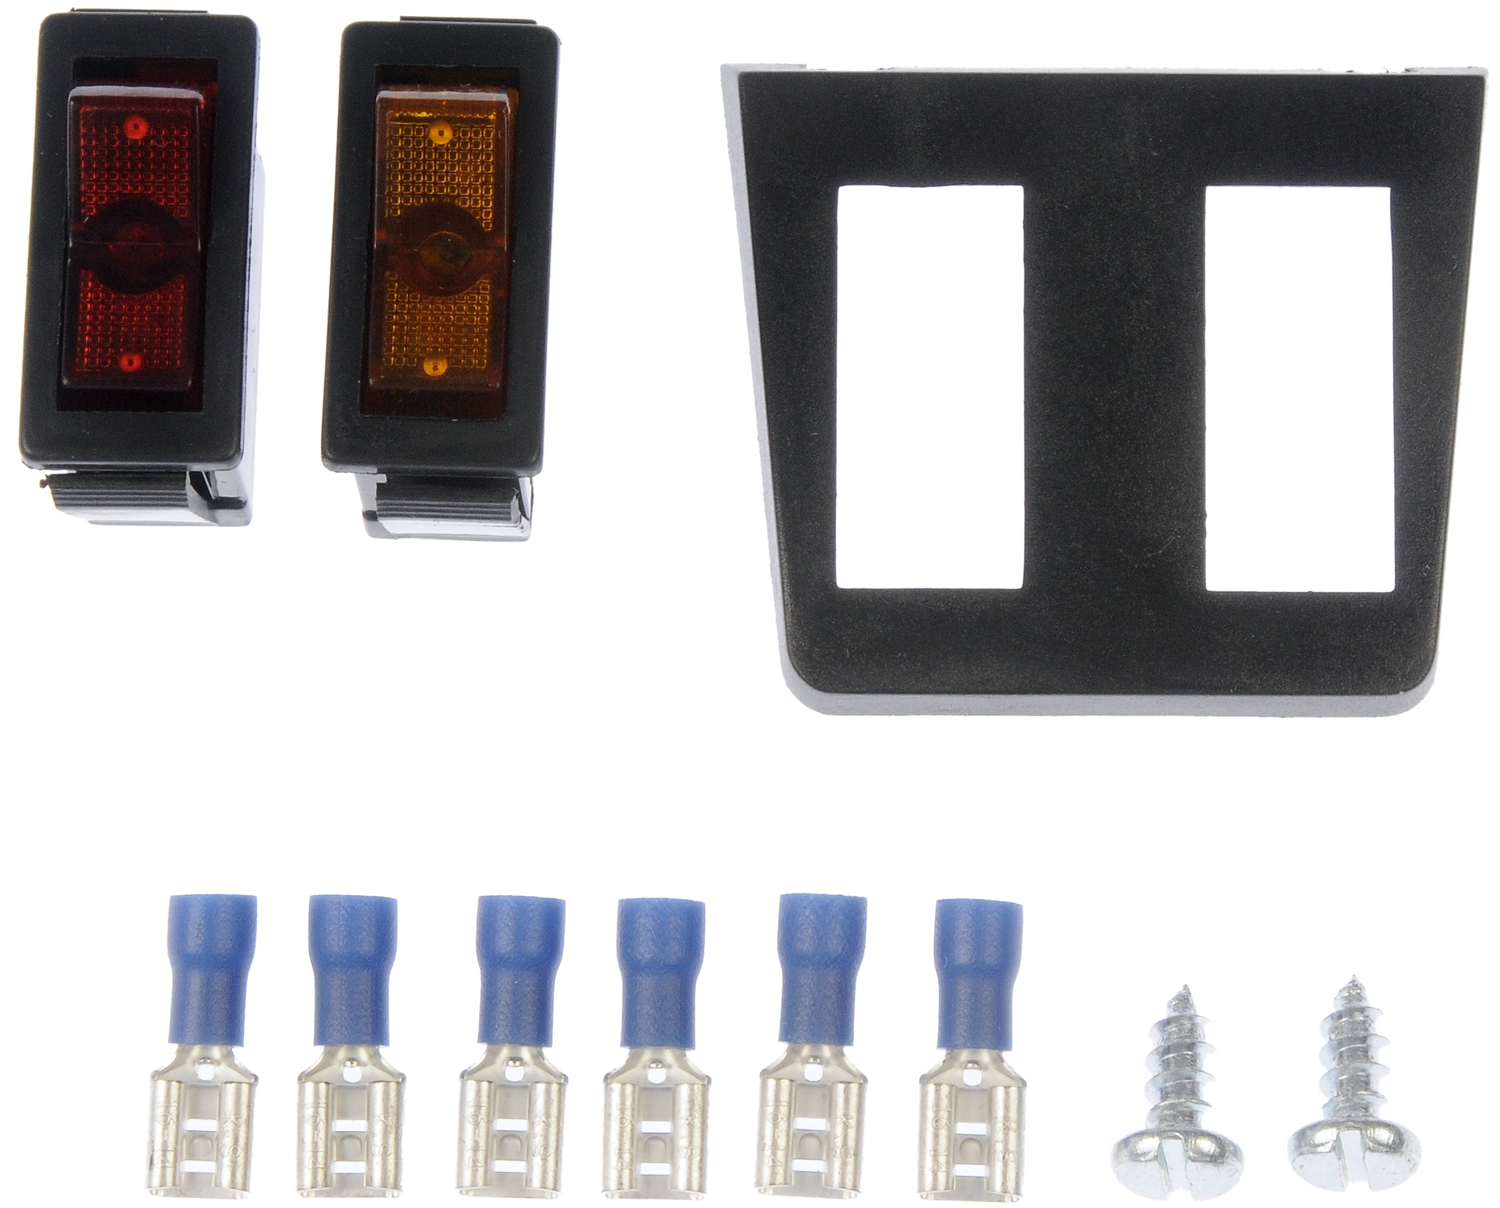 hight resolution of dorman oe solutions 86921 multi purpose switch conduct tite r 12 volt 20 amp max rocker rectangular non lighted red amber without safety cover